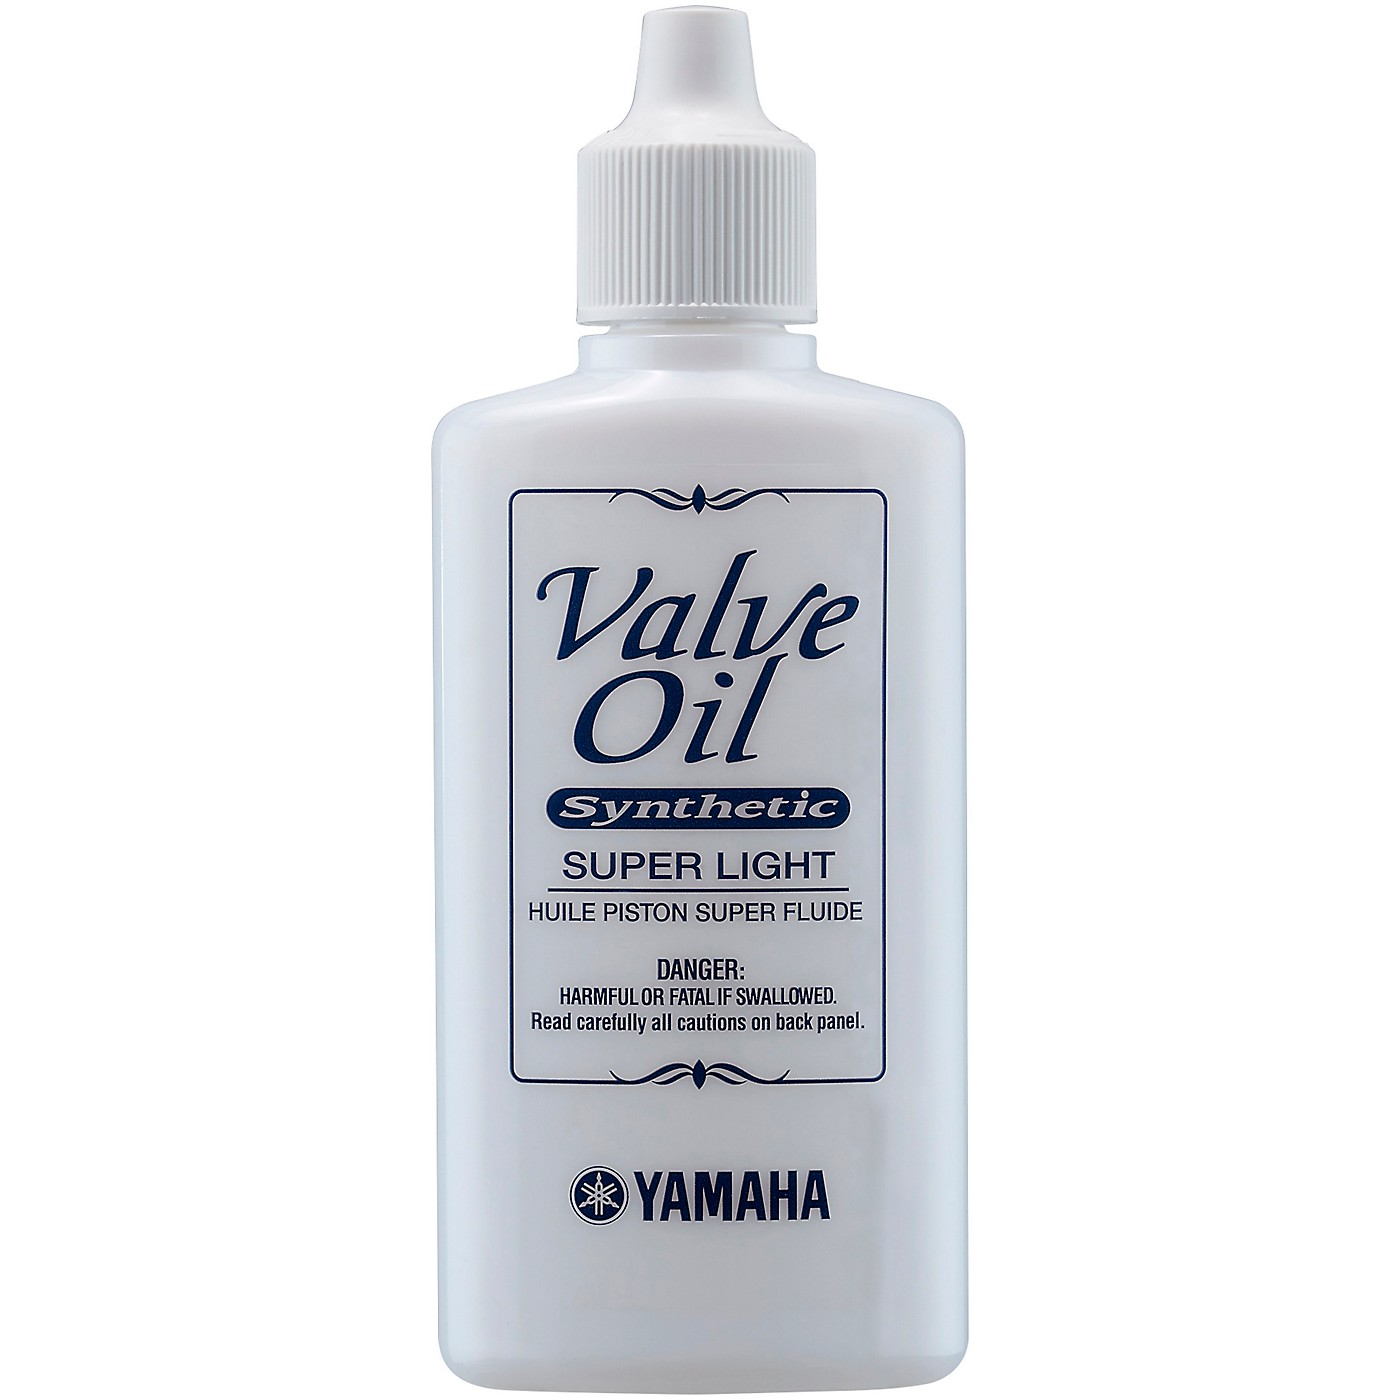 Yamaha Super Light Synthetic Valve Oil, 60mL thumbnail